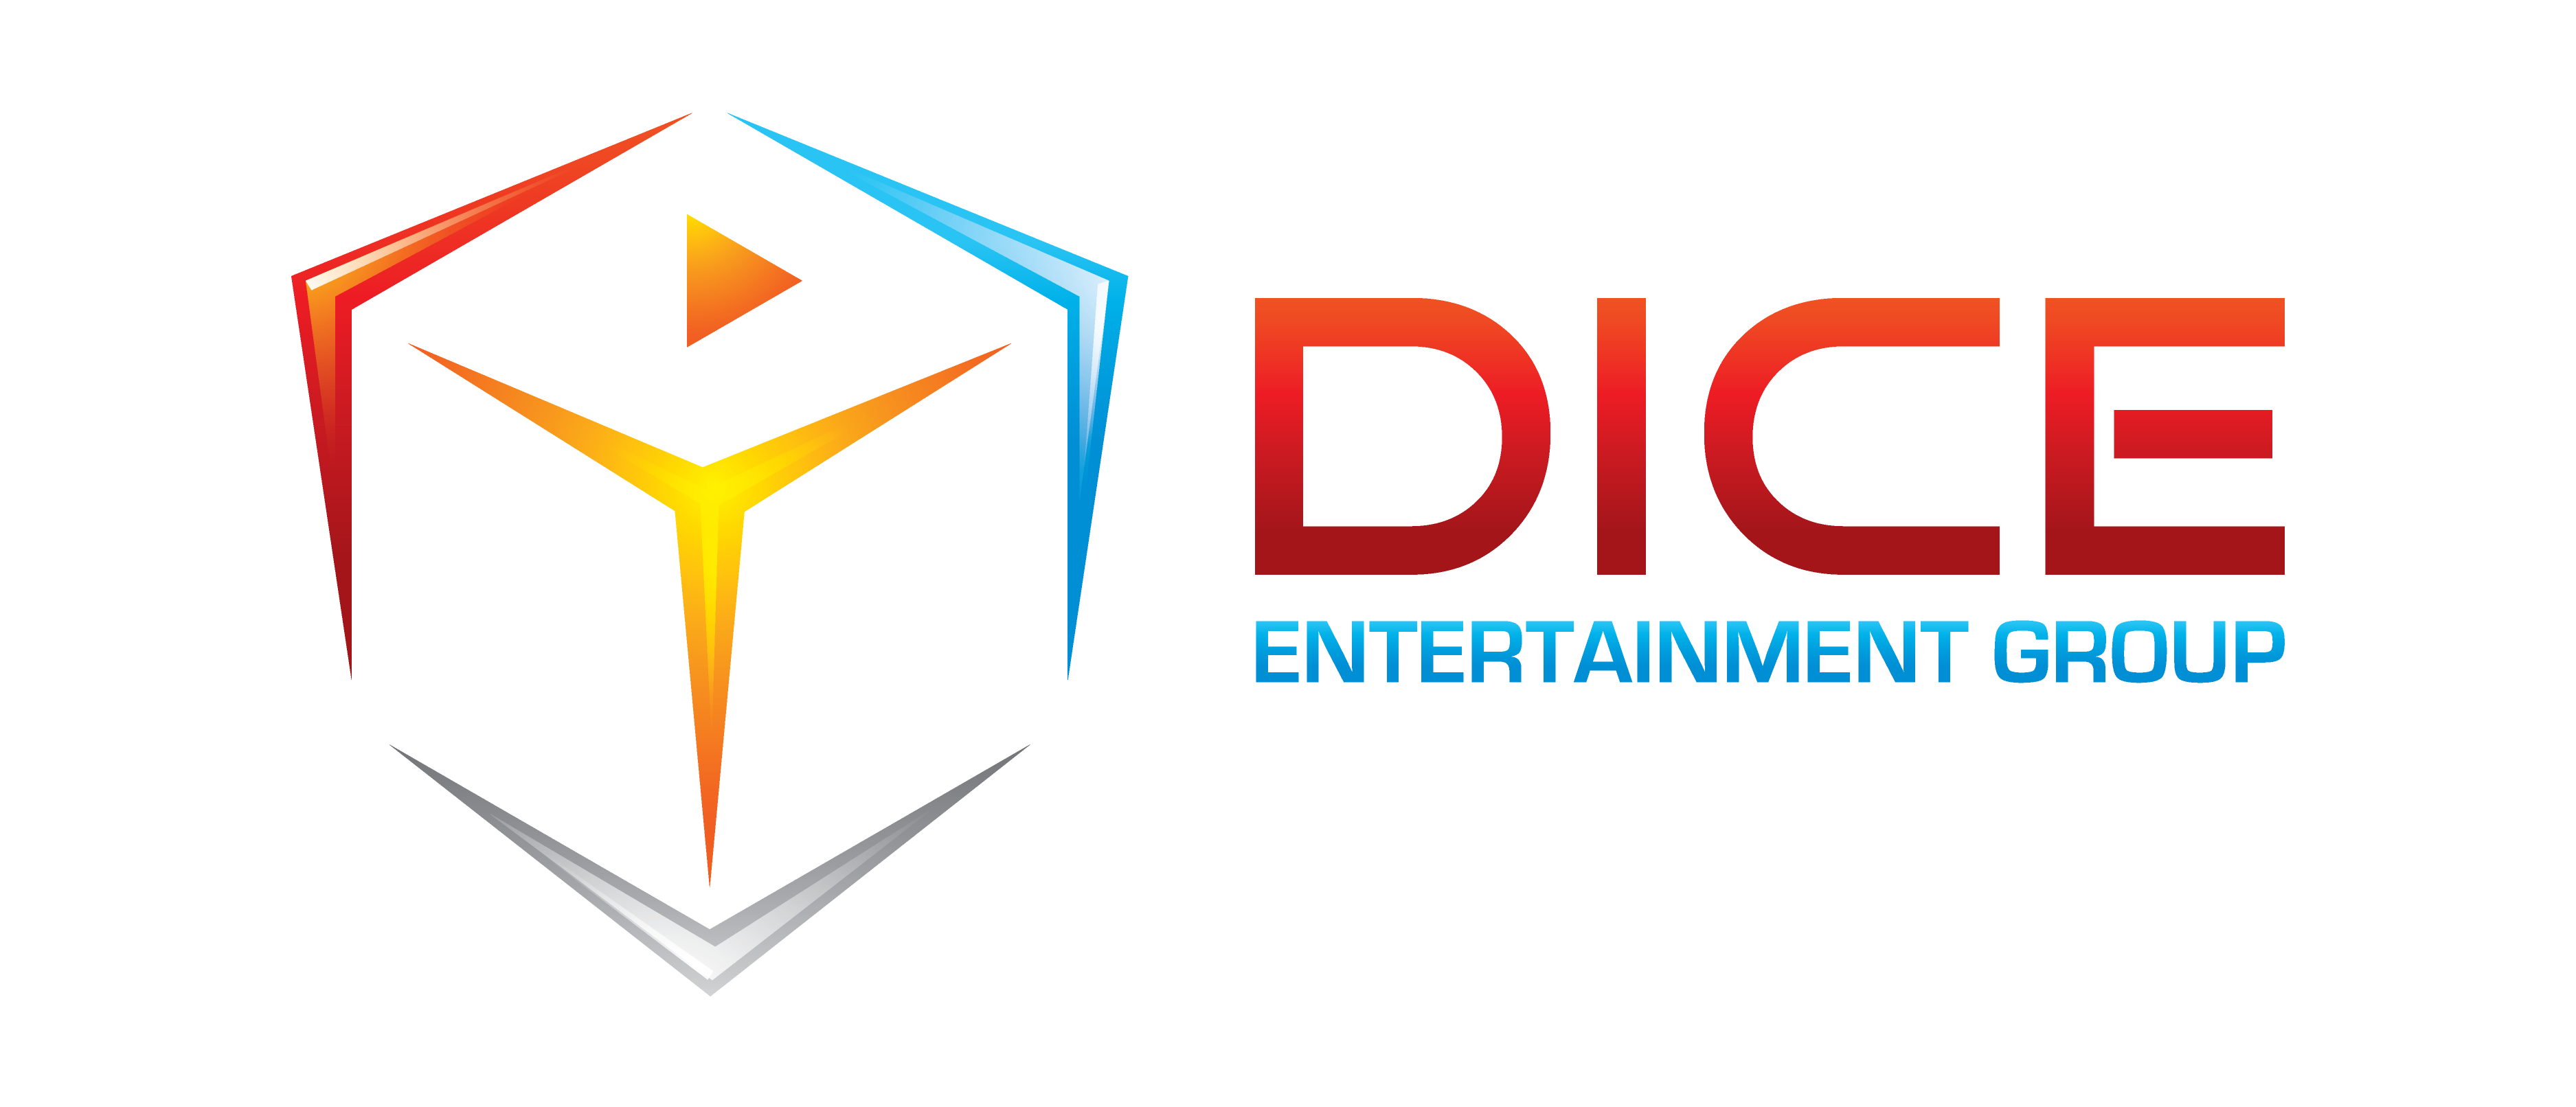 Dice Entertainment